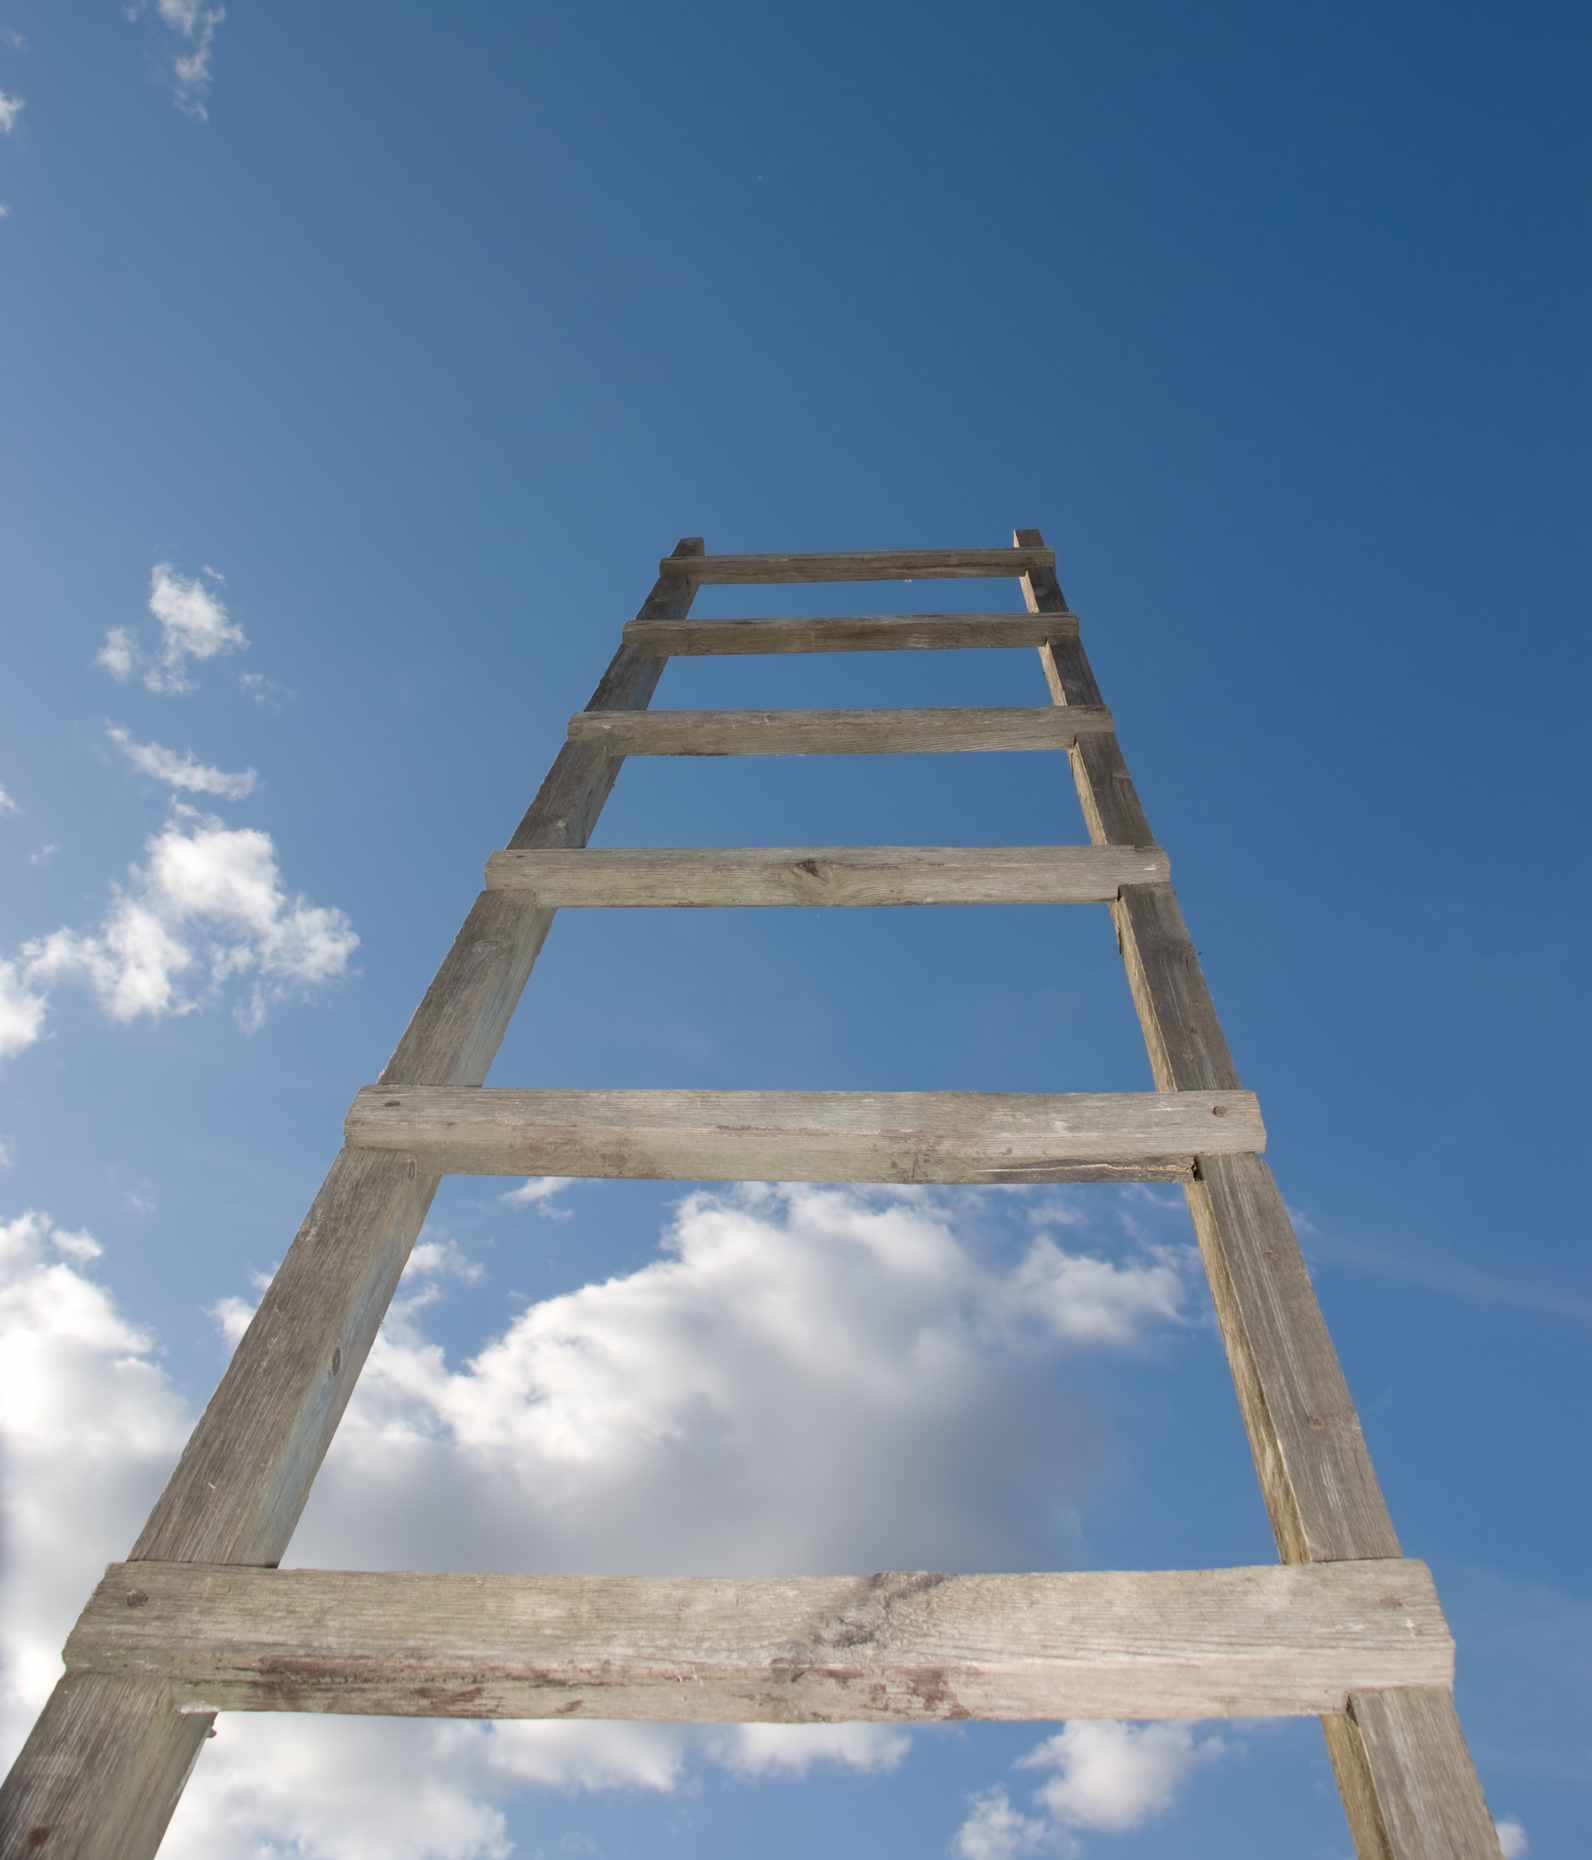 A weathered wooden ladder extending into the sky, but connecting to nothing, photo by Yury Shirokov